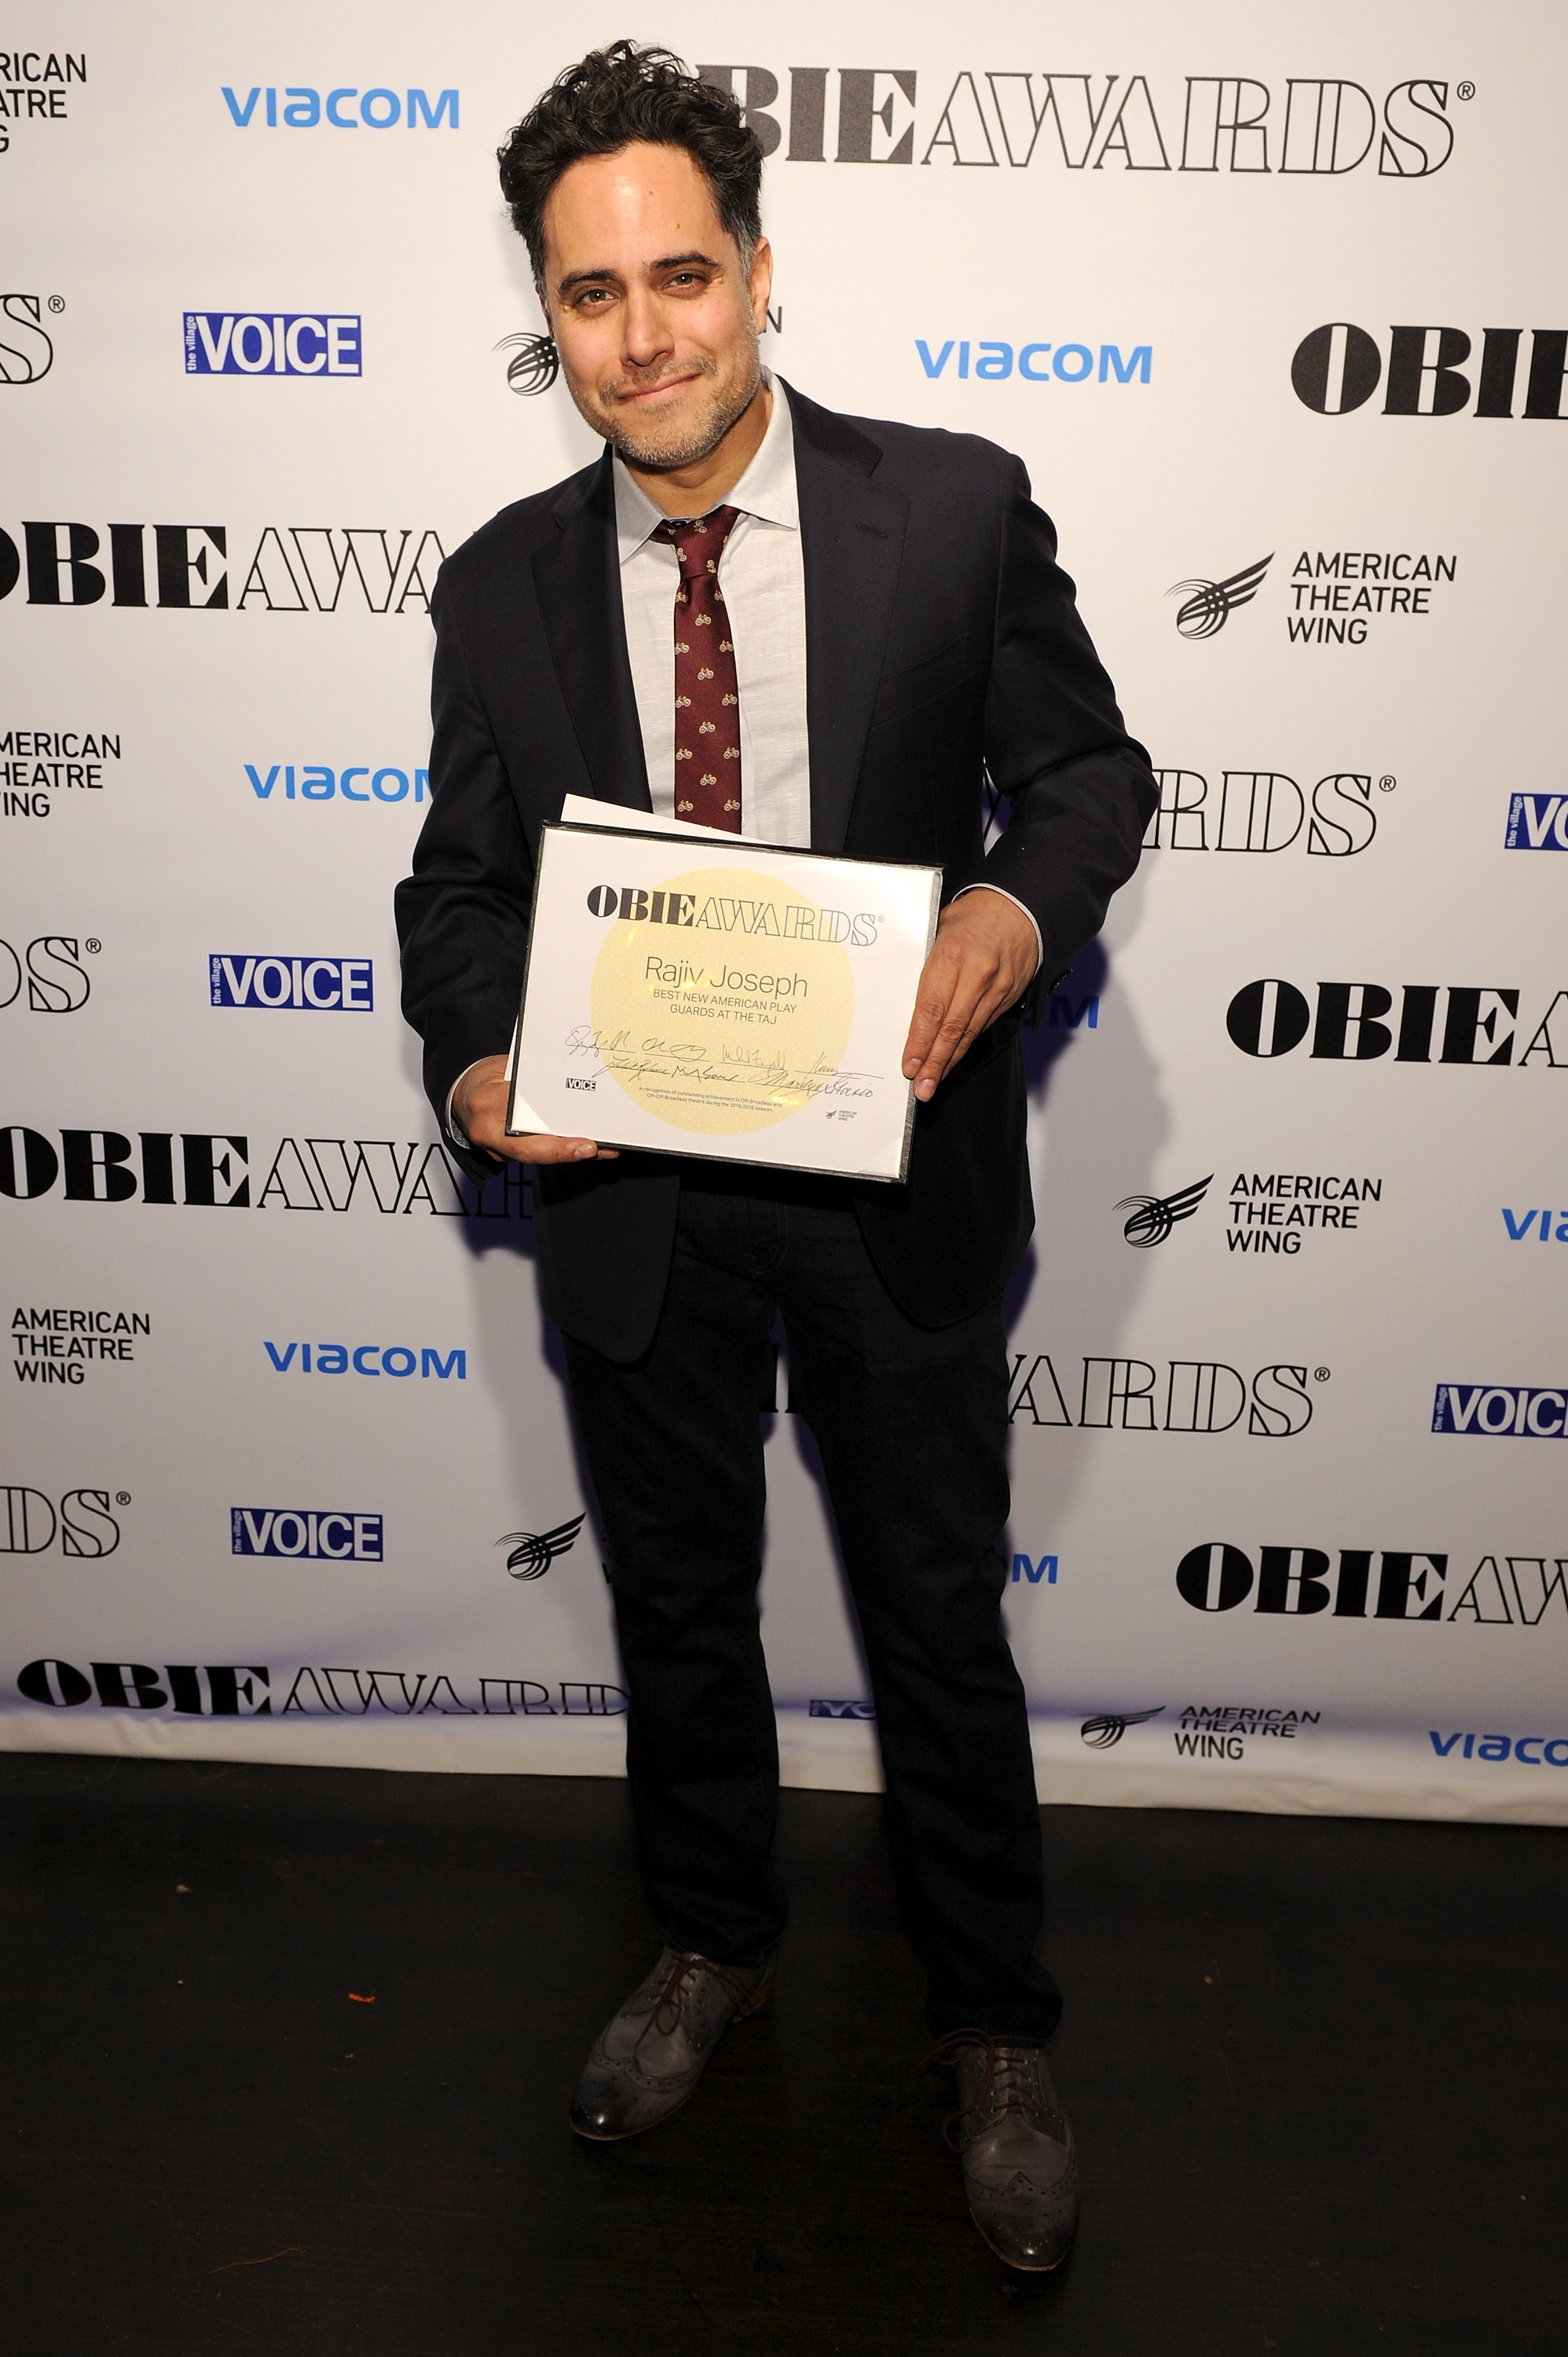 NEW YORK, NY - MAY 23:  Rajiv Joseph poses with  award at the 61st Annual Obie Awards at Webster Hall on May 23, 2016 in New York City.  (Photo by Craig Barritt/Getty Images for American Theater Wing)